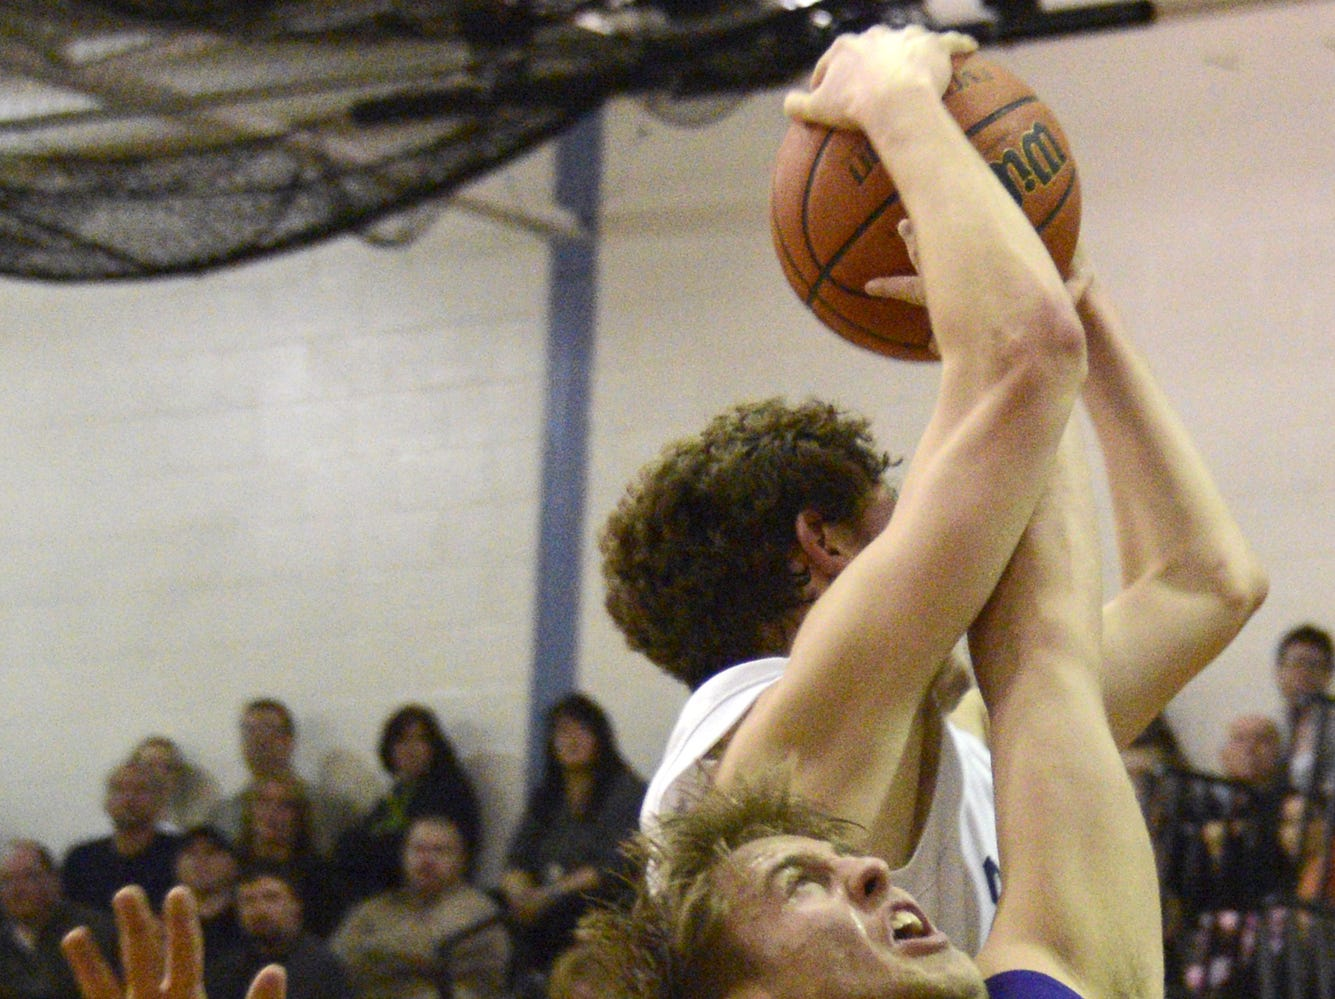 2013: Colin Manchester of Susquehanna Valley grabs the rebound over Norwich's Grant Brightman in the second half of Tuesday's STAC game in Conklin.